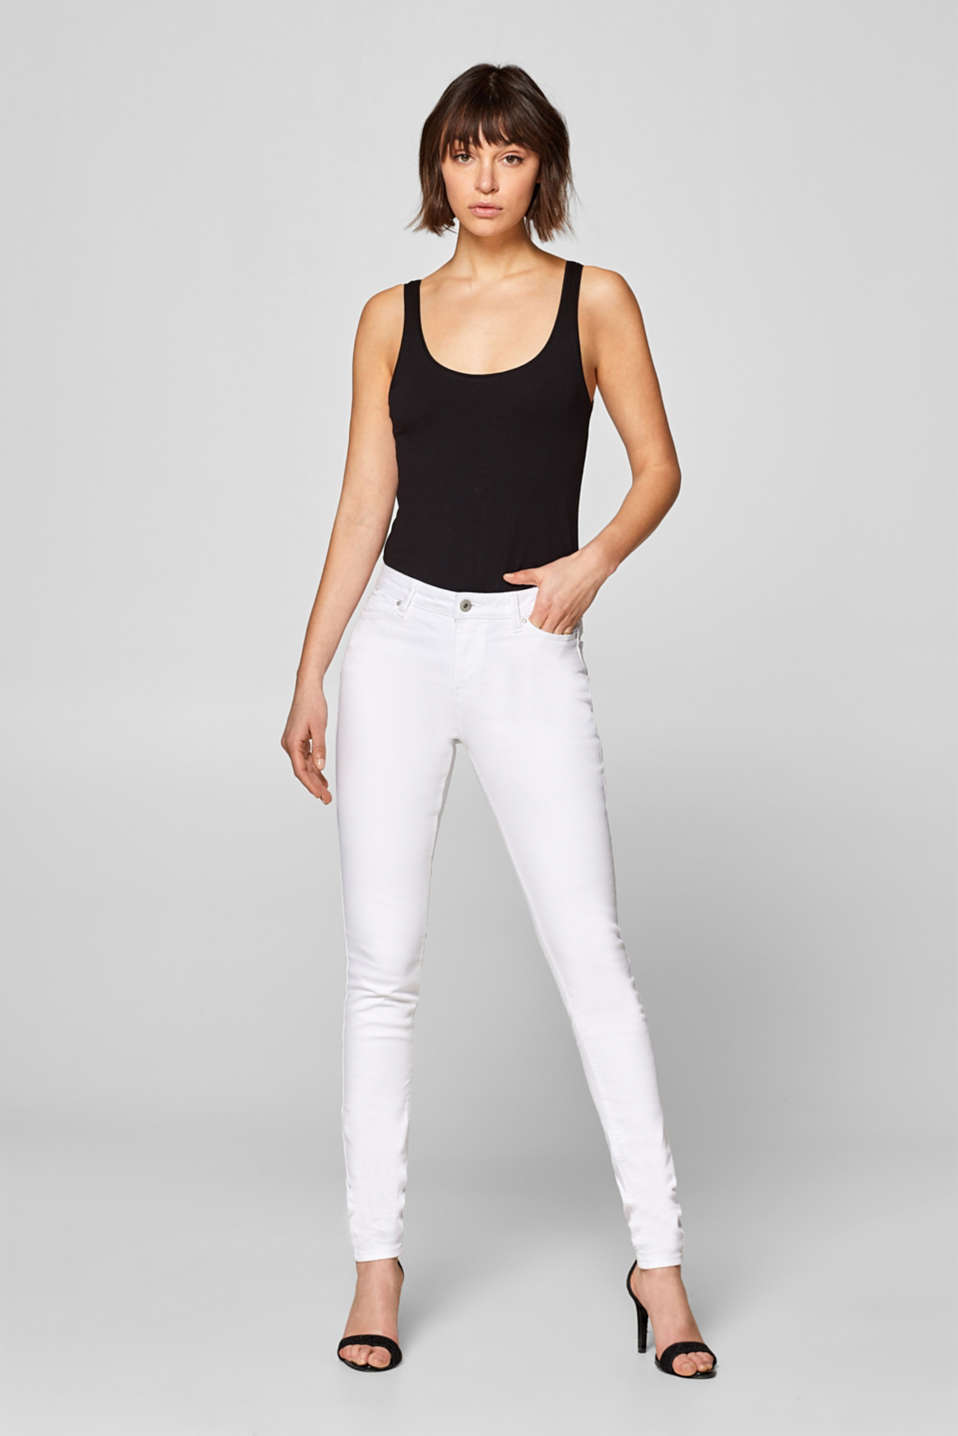 edc - Stretch jeans in a basic design